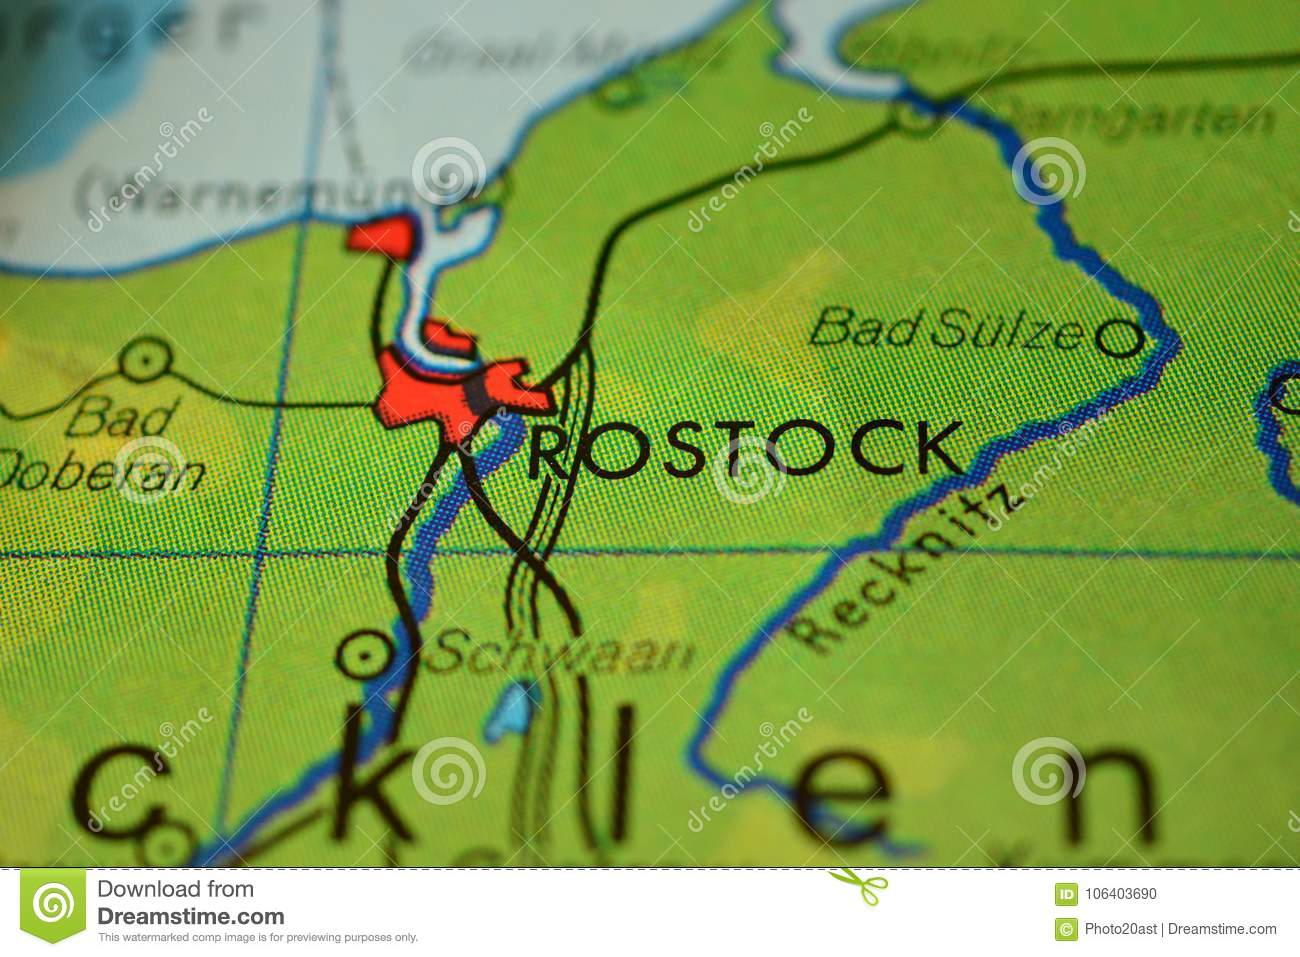 The Word Rostock On The Map Stock Photo Image Of Detail Graphic